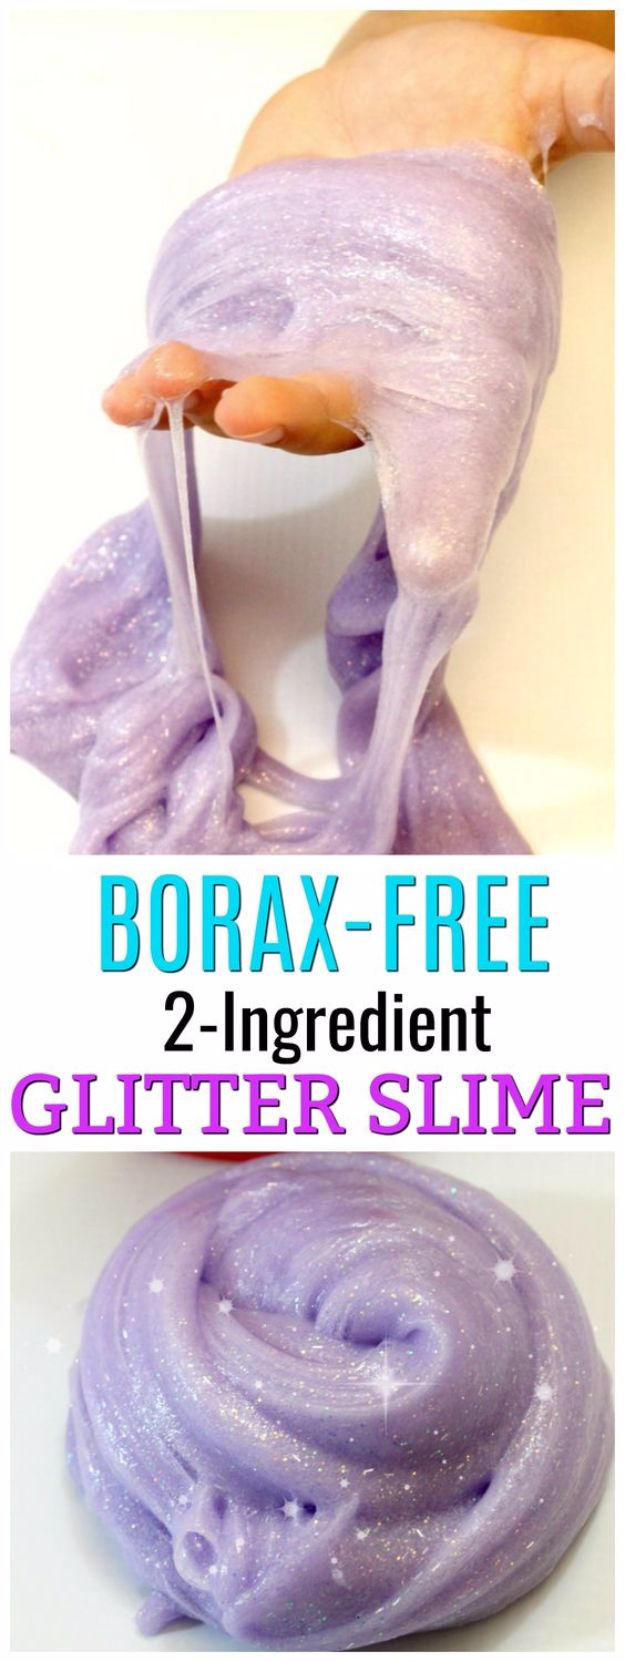 Best DIY Slime Recipes - Easy Glitter Slime With No Borax - Cool and Easy Slime Recipe and Tutorials - Ideas Without Glue, Without Borax, For Kids, With Liquid Starch, Cornstarch and Laundry Detergent - How to Make Slime at Home - Fun Crafts and DIY Projects for Teens, Kids, Teenagers and Teens - Galaxy and Glitter Slime, Edible Slime, Rainbow Colored Slime, Shaving Cream recipes and more fun crafts and slimes #slimerecipes #slime #diyslime #teencrafts